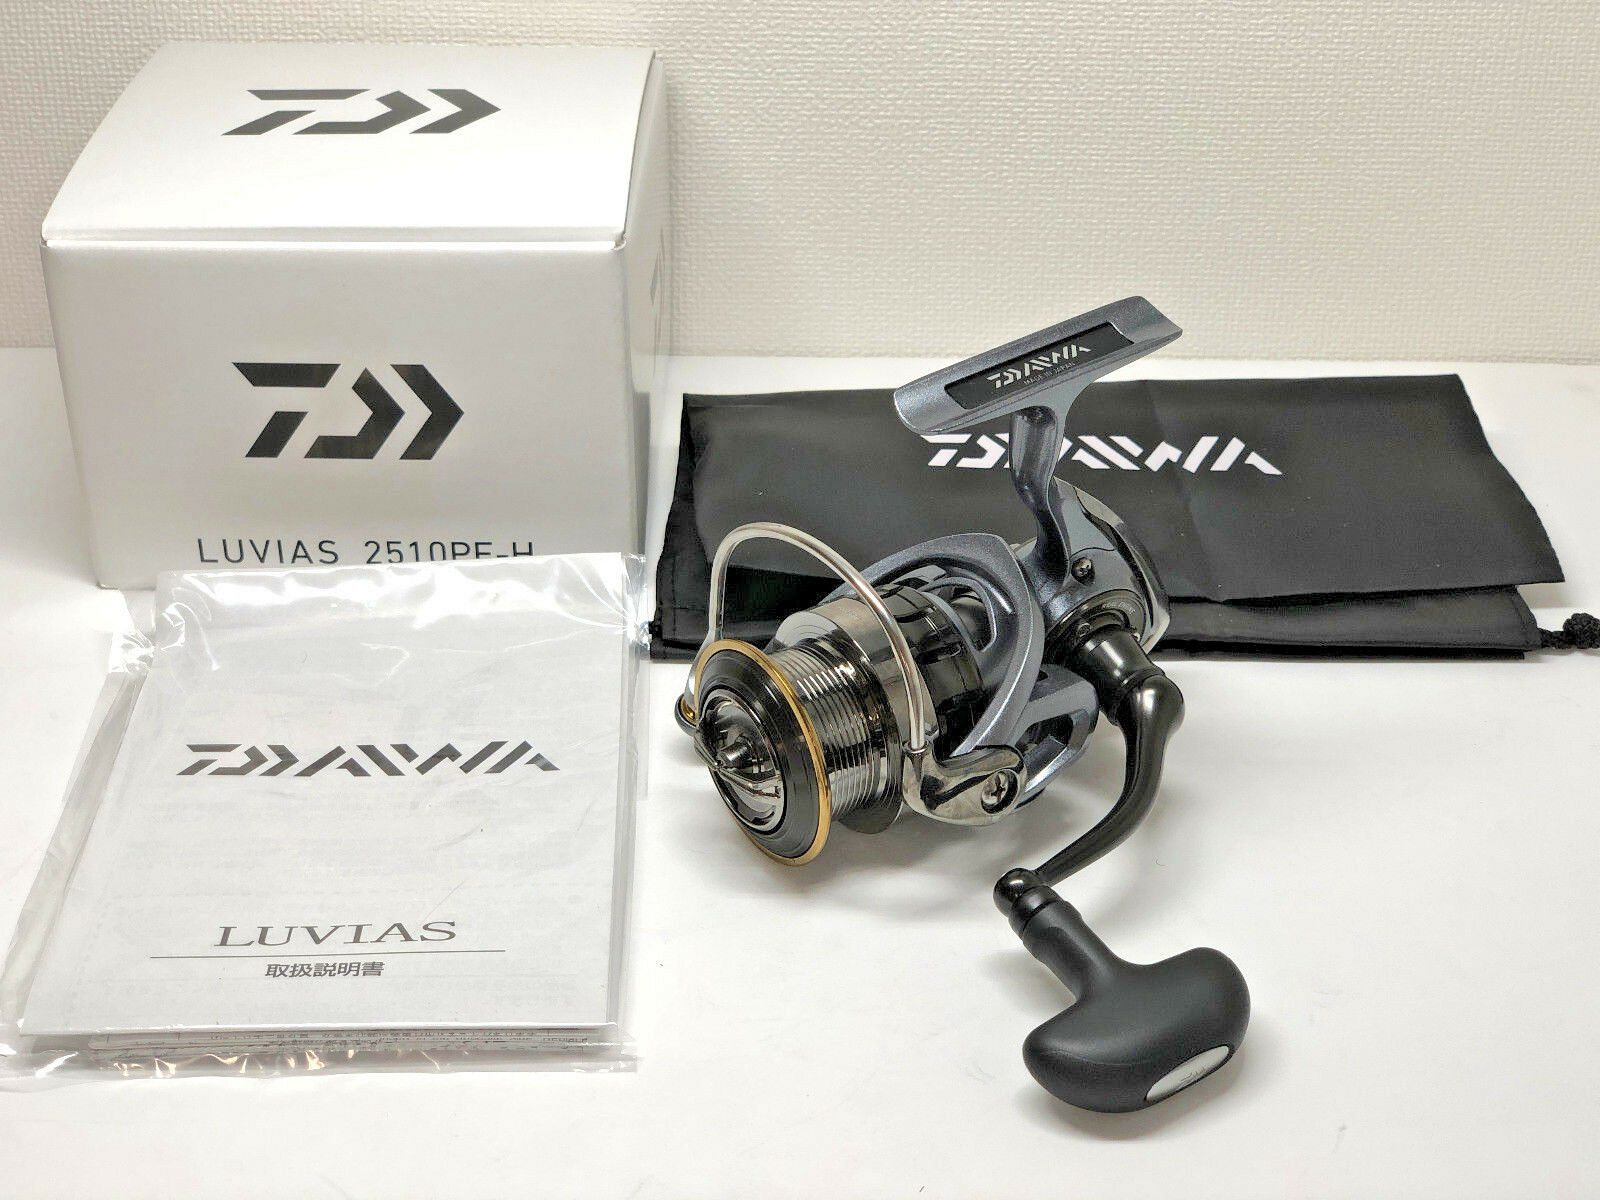 DAIWA 15 LUVIAS 2510PE-H   - Free Shipping from Japan